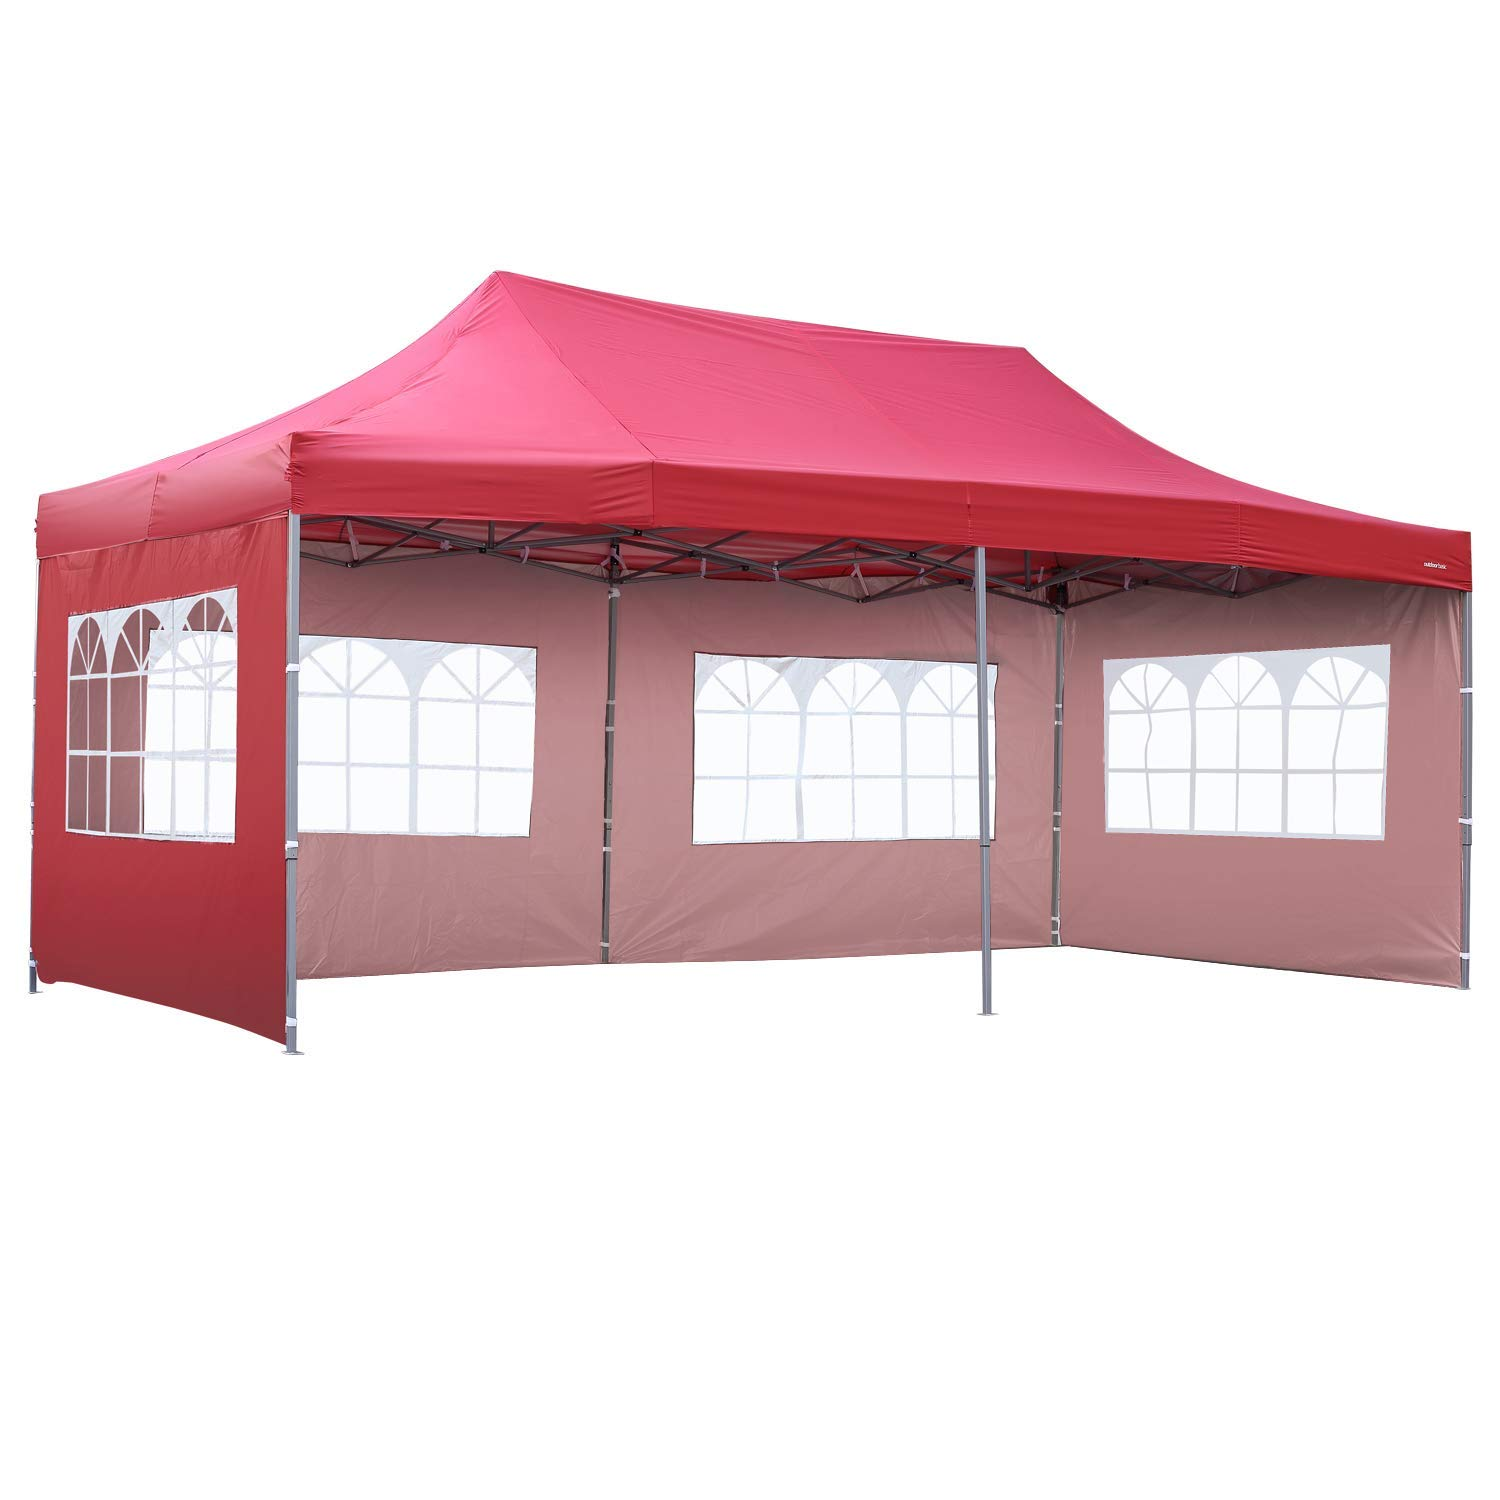 Outdoor Basic 10x20 Ft Wedding Party Canopy Tent Pop up Instant Gazebo with Removable Sidewalls and Windows (Red 4 Walls) by Outdoor Basic